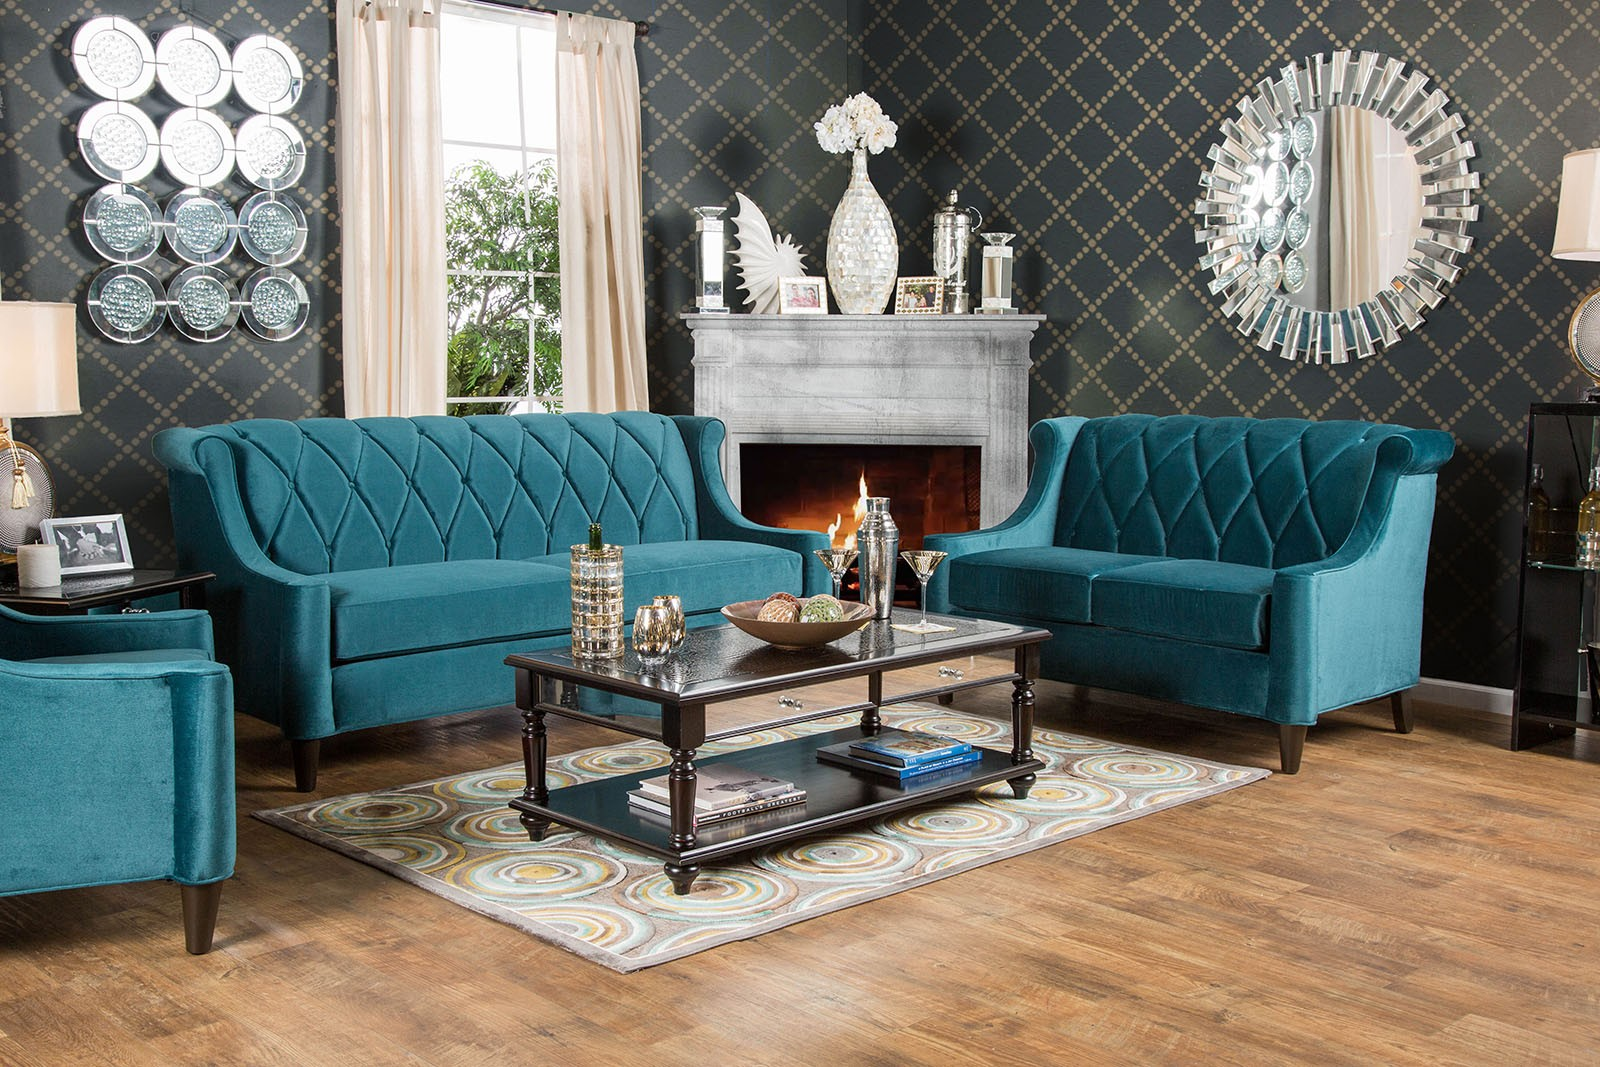 These 6 Pieces Of Colorful Furniture Are Absolute Must Haves: Limerick Dark Teal Living Room Set, SM2882-SF, Furniture